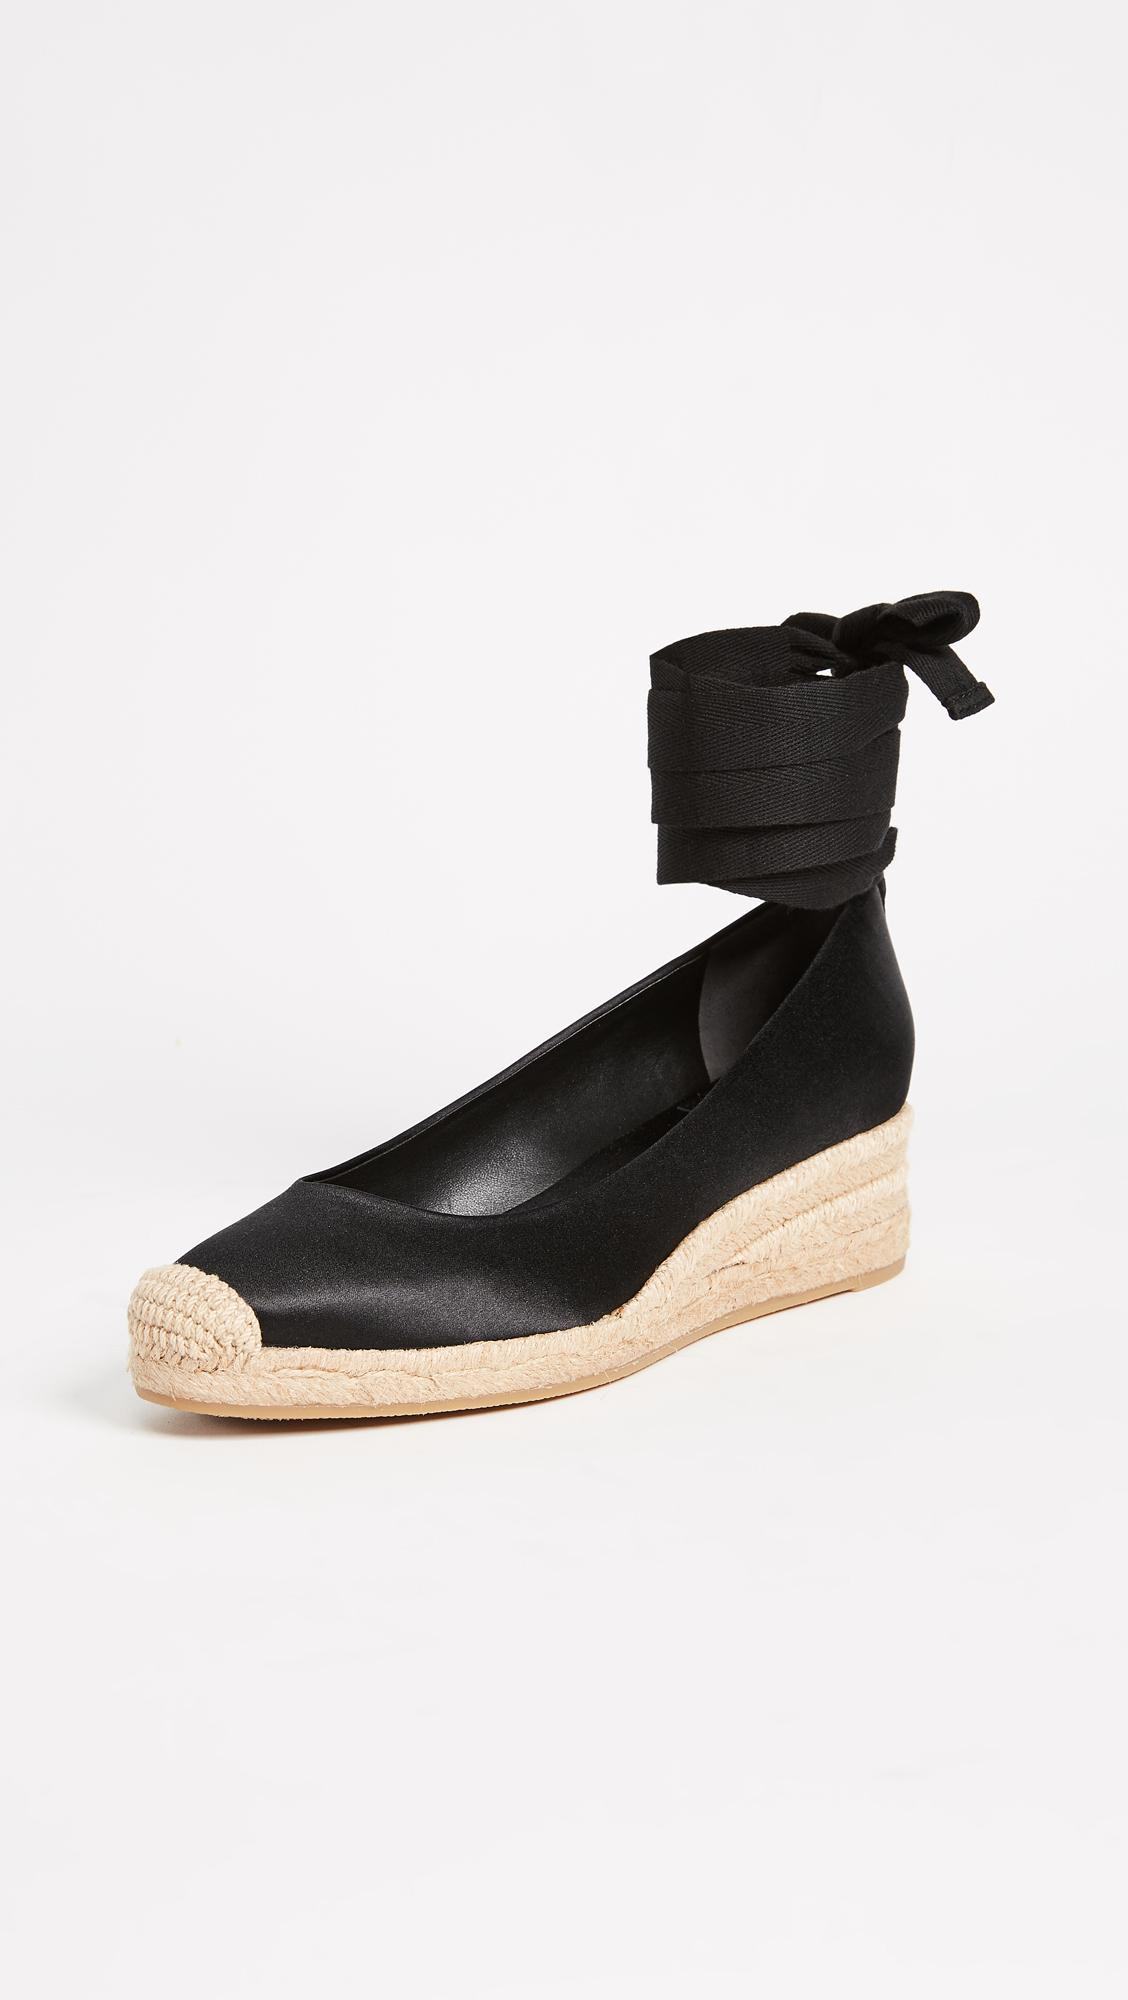 fbcdd05f7 Tory Burch Heather 40mm Wedge Espadrilles in Black - Lyst